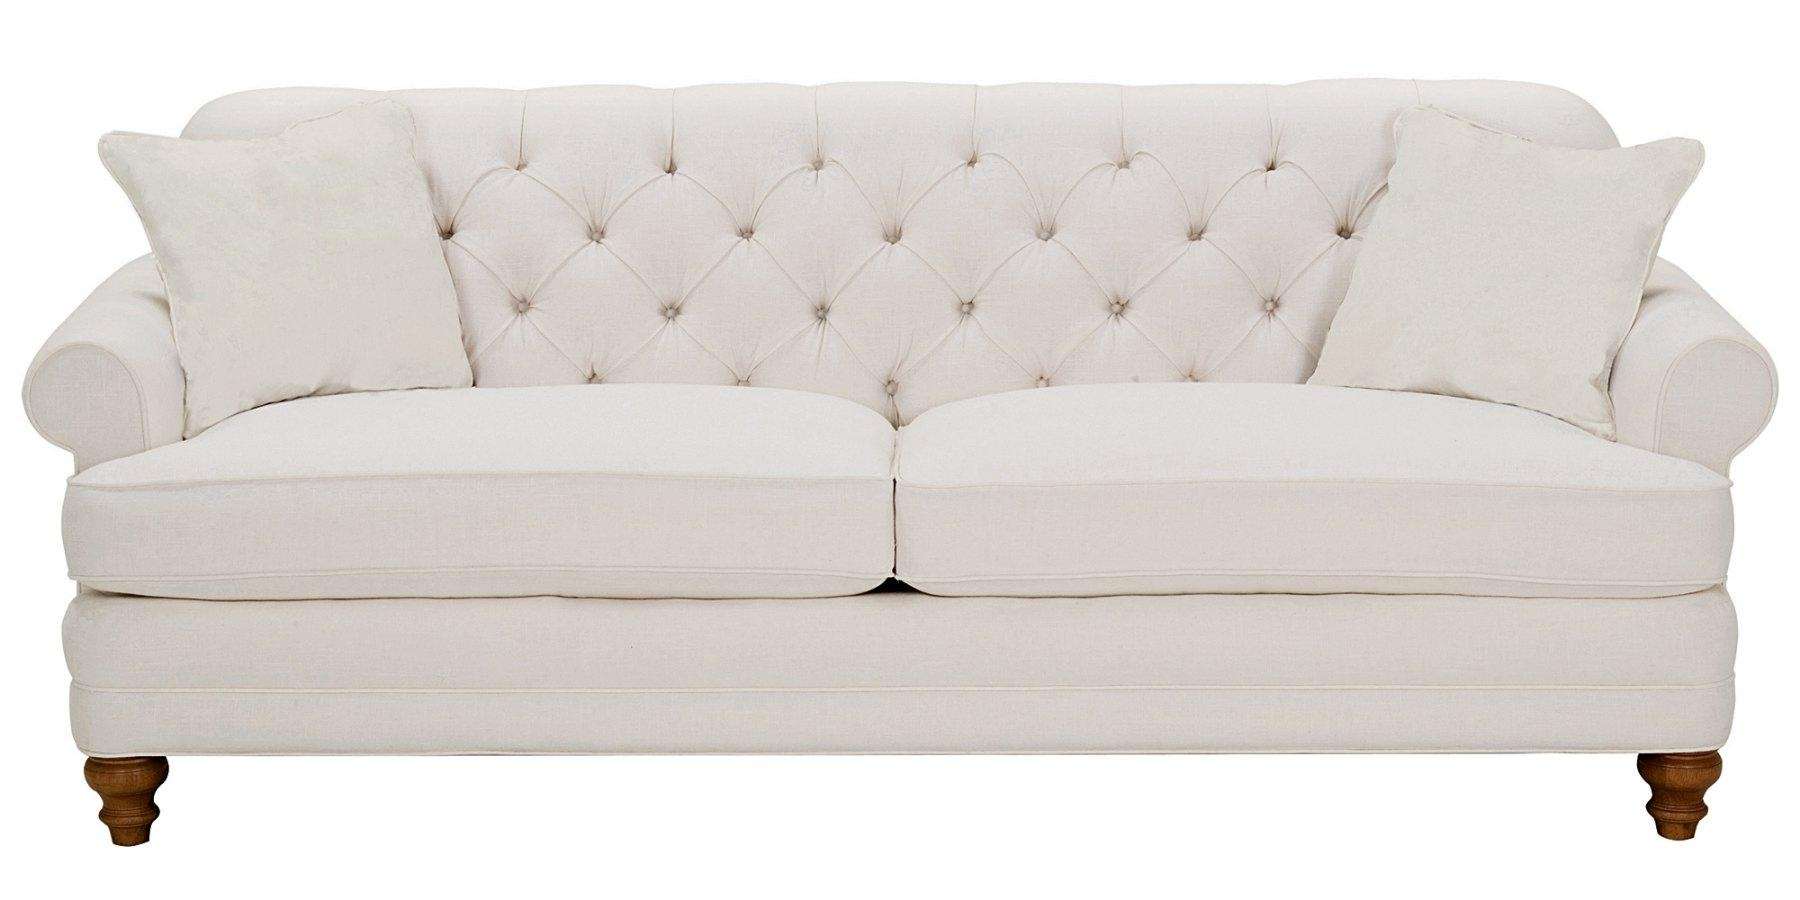 Arhaus Club Sofa With Concept Hd Images 24978 | Kengire Throughout Arhaus Club Sofas (View 20 of 20)